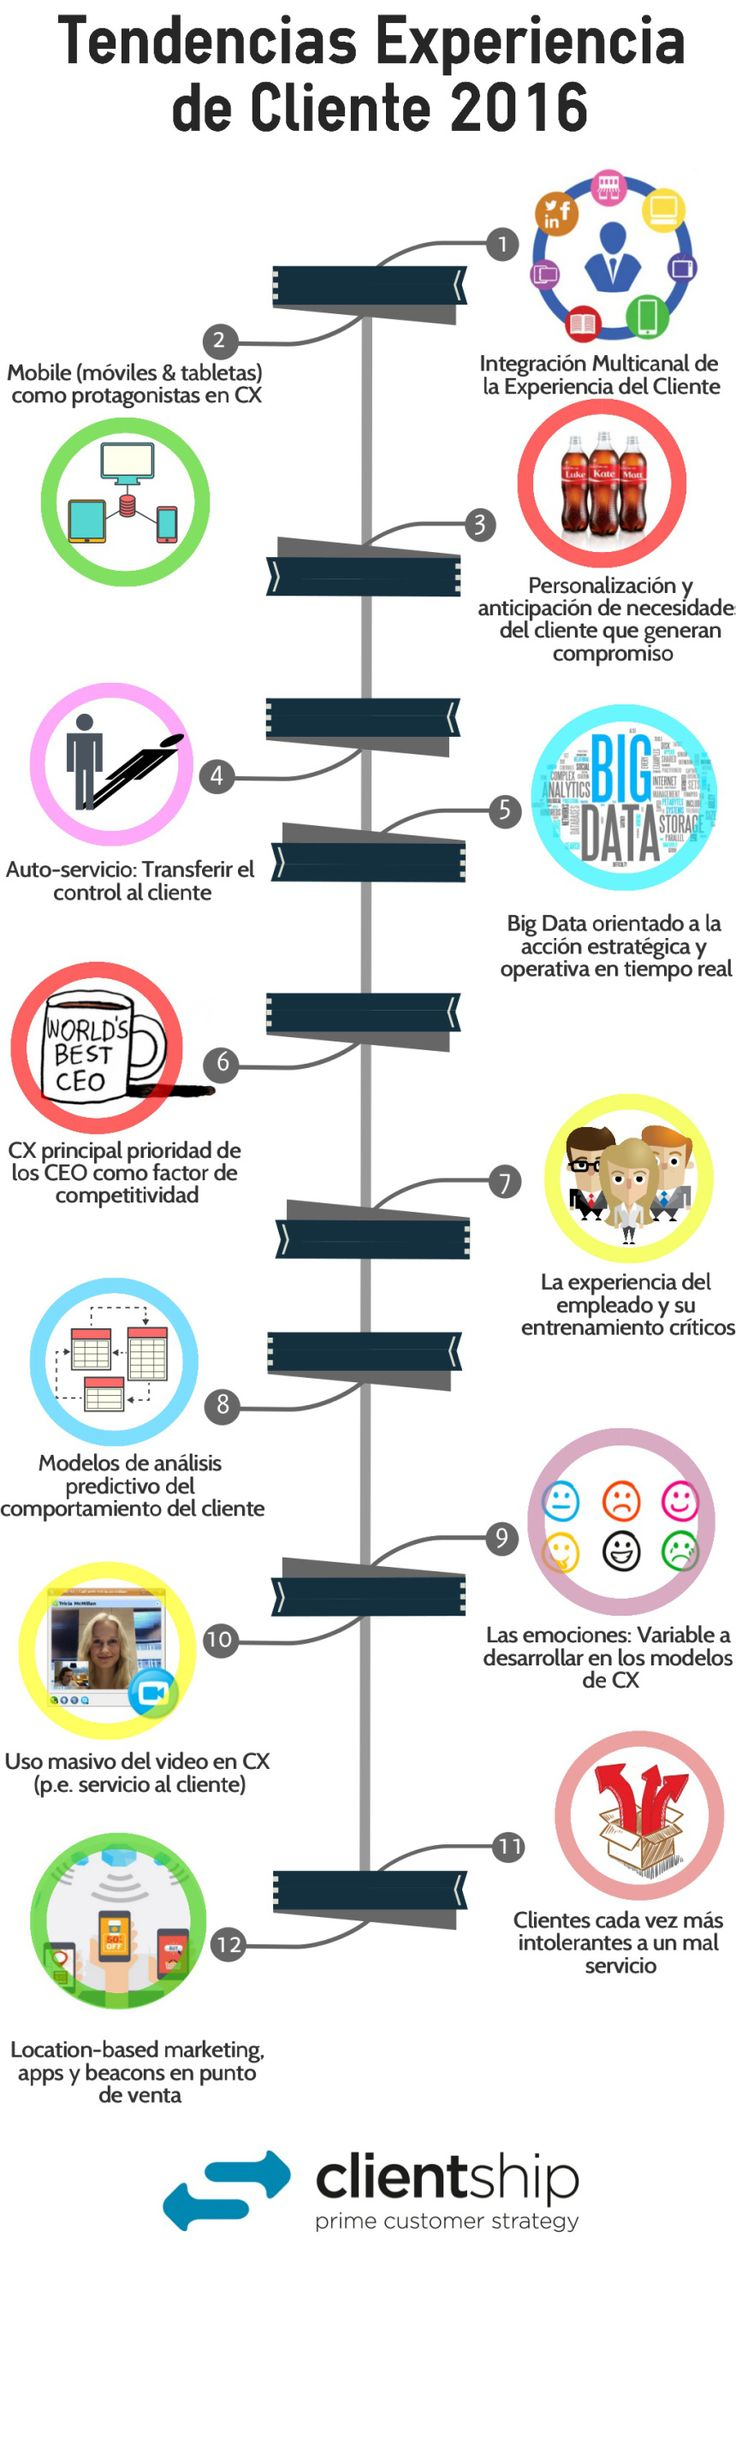 TENDENCIAS SOBRE EXPERIENCIA DE CLIENTE #INFOGRAFIA #INFOGRAPHIC #MARKETING